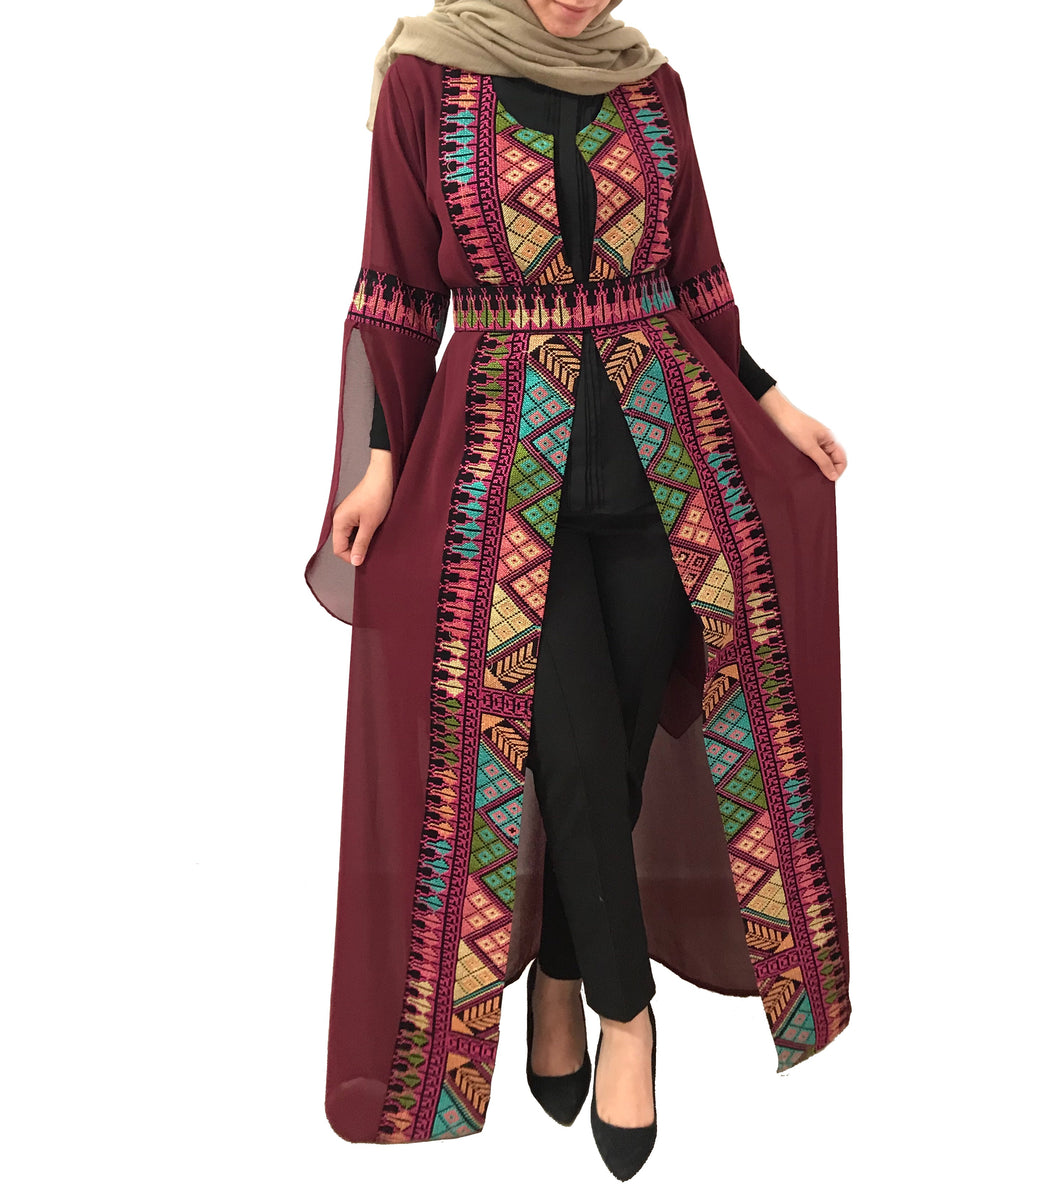 Burgundy Embroidered Open Abaya Kaftan Maxi Dress Long Open Bell Sleeves